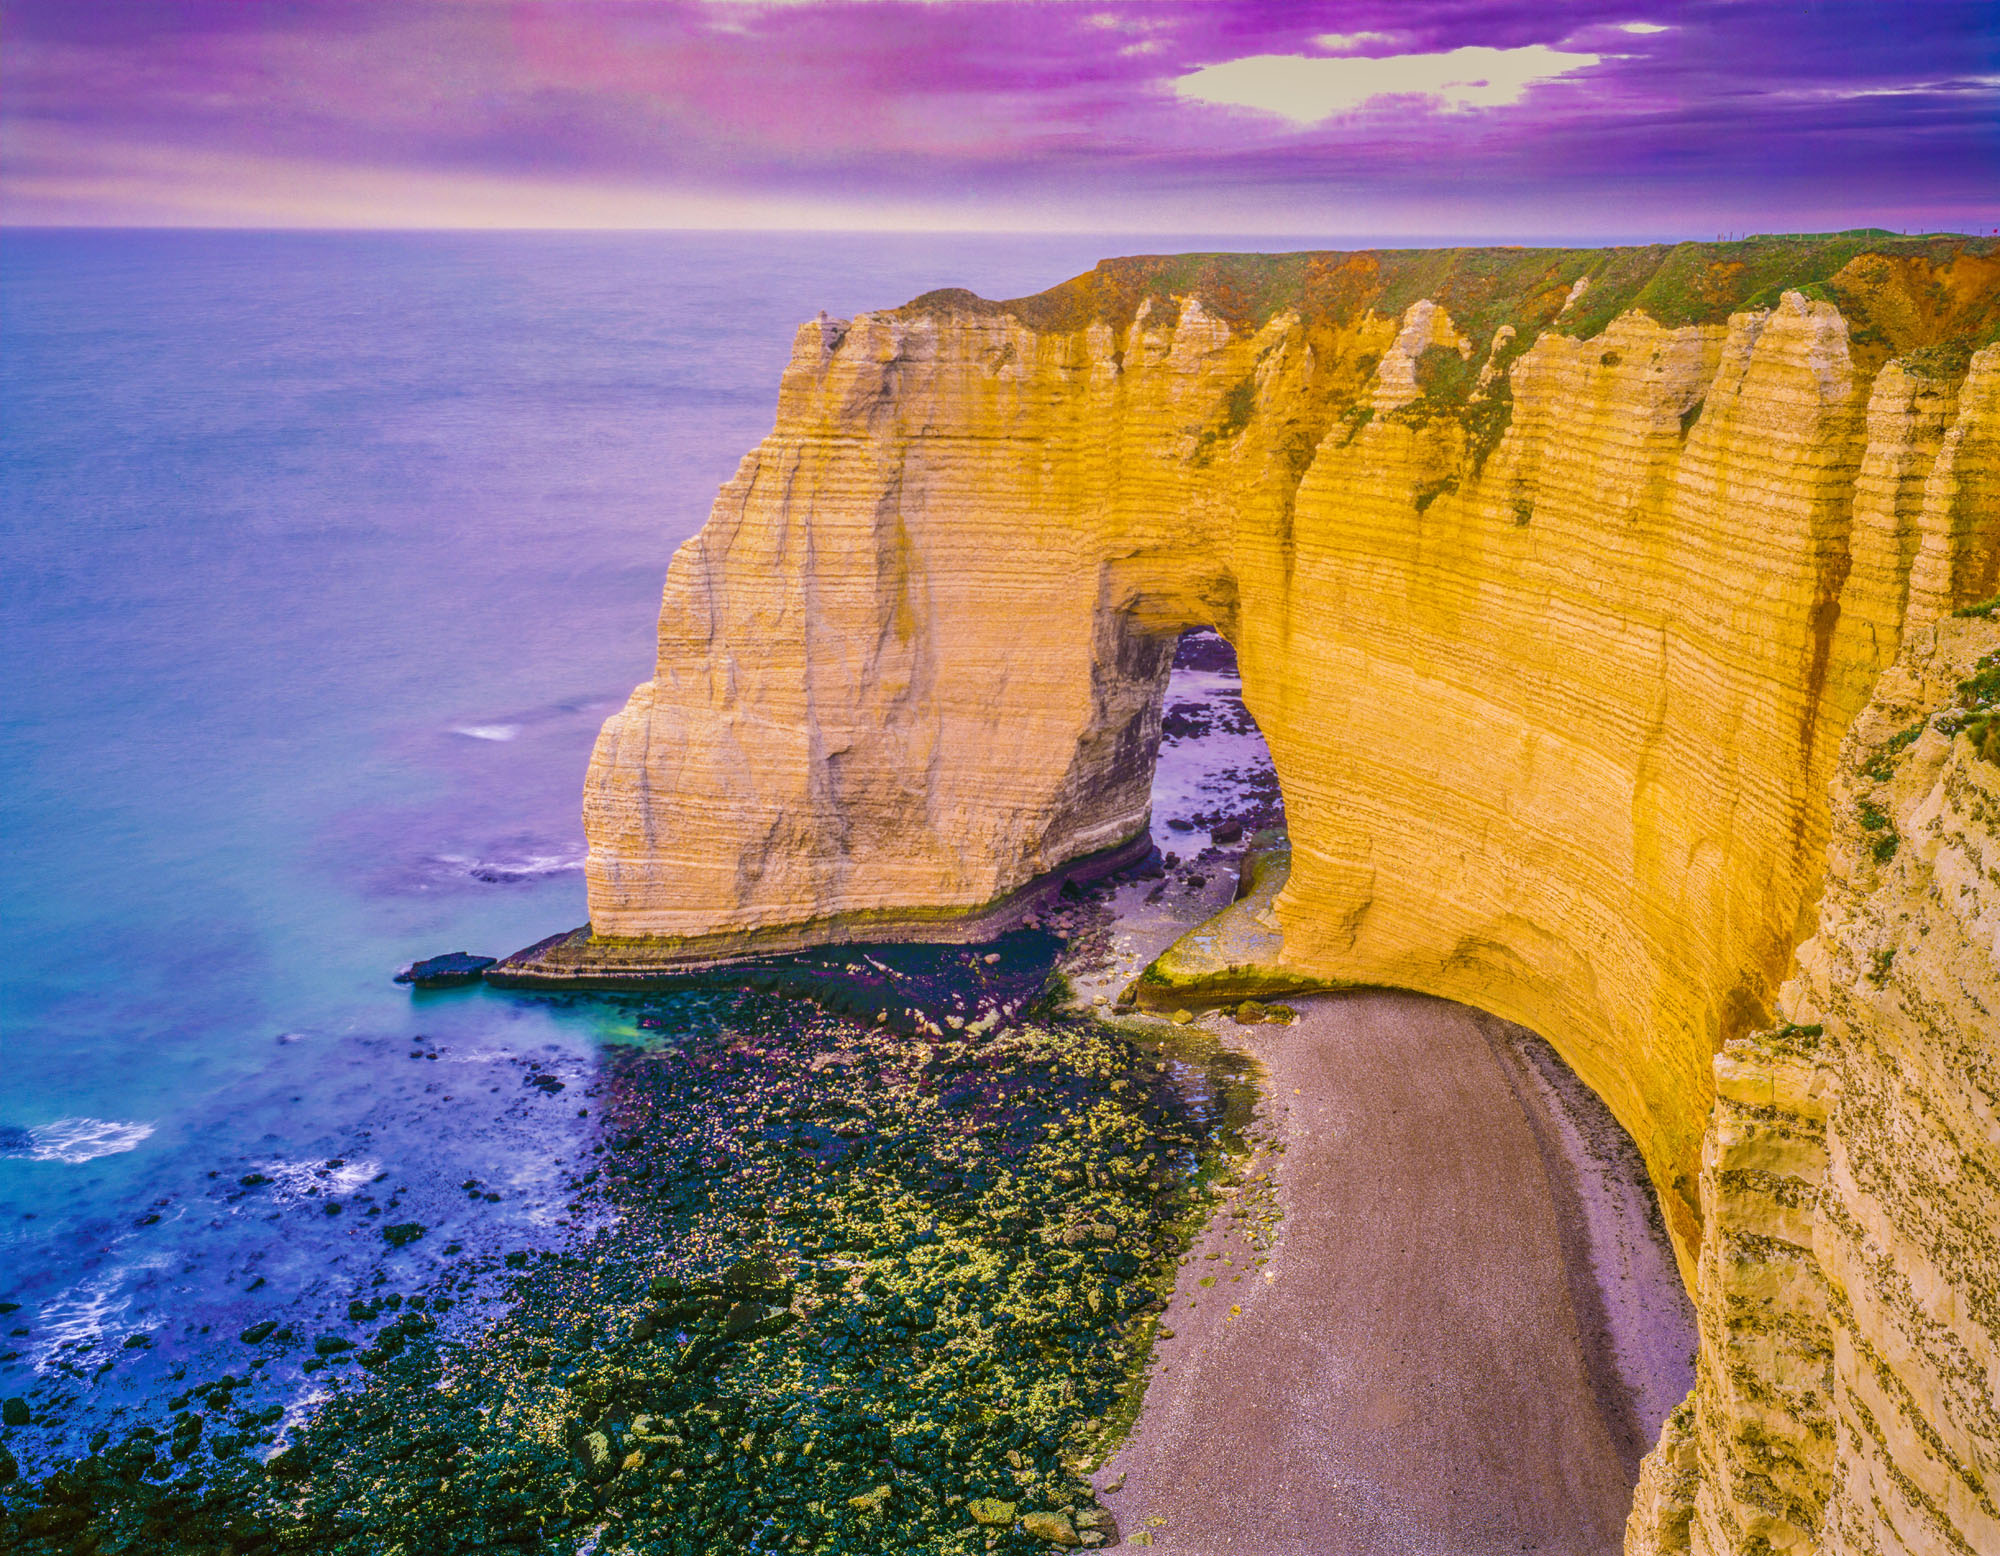 Sea arch, White Cliffs of Etretat, France photographed by Tom Till